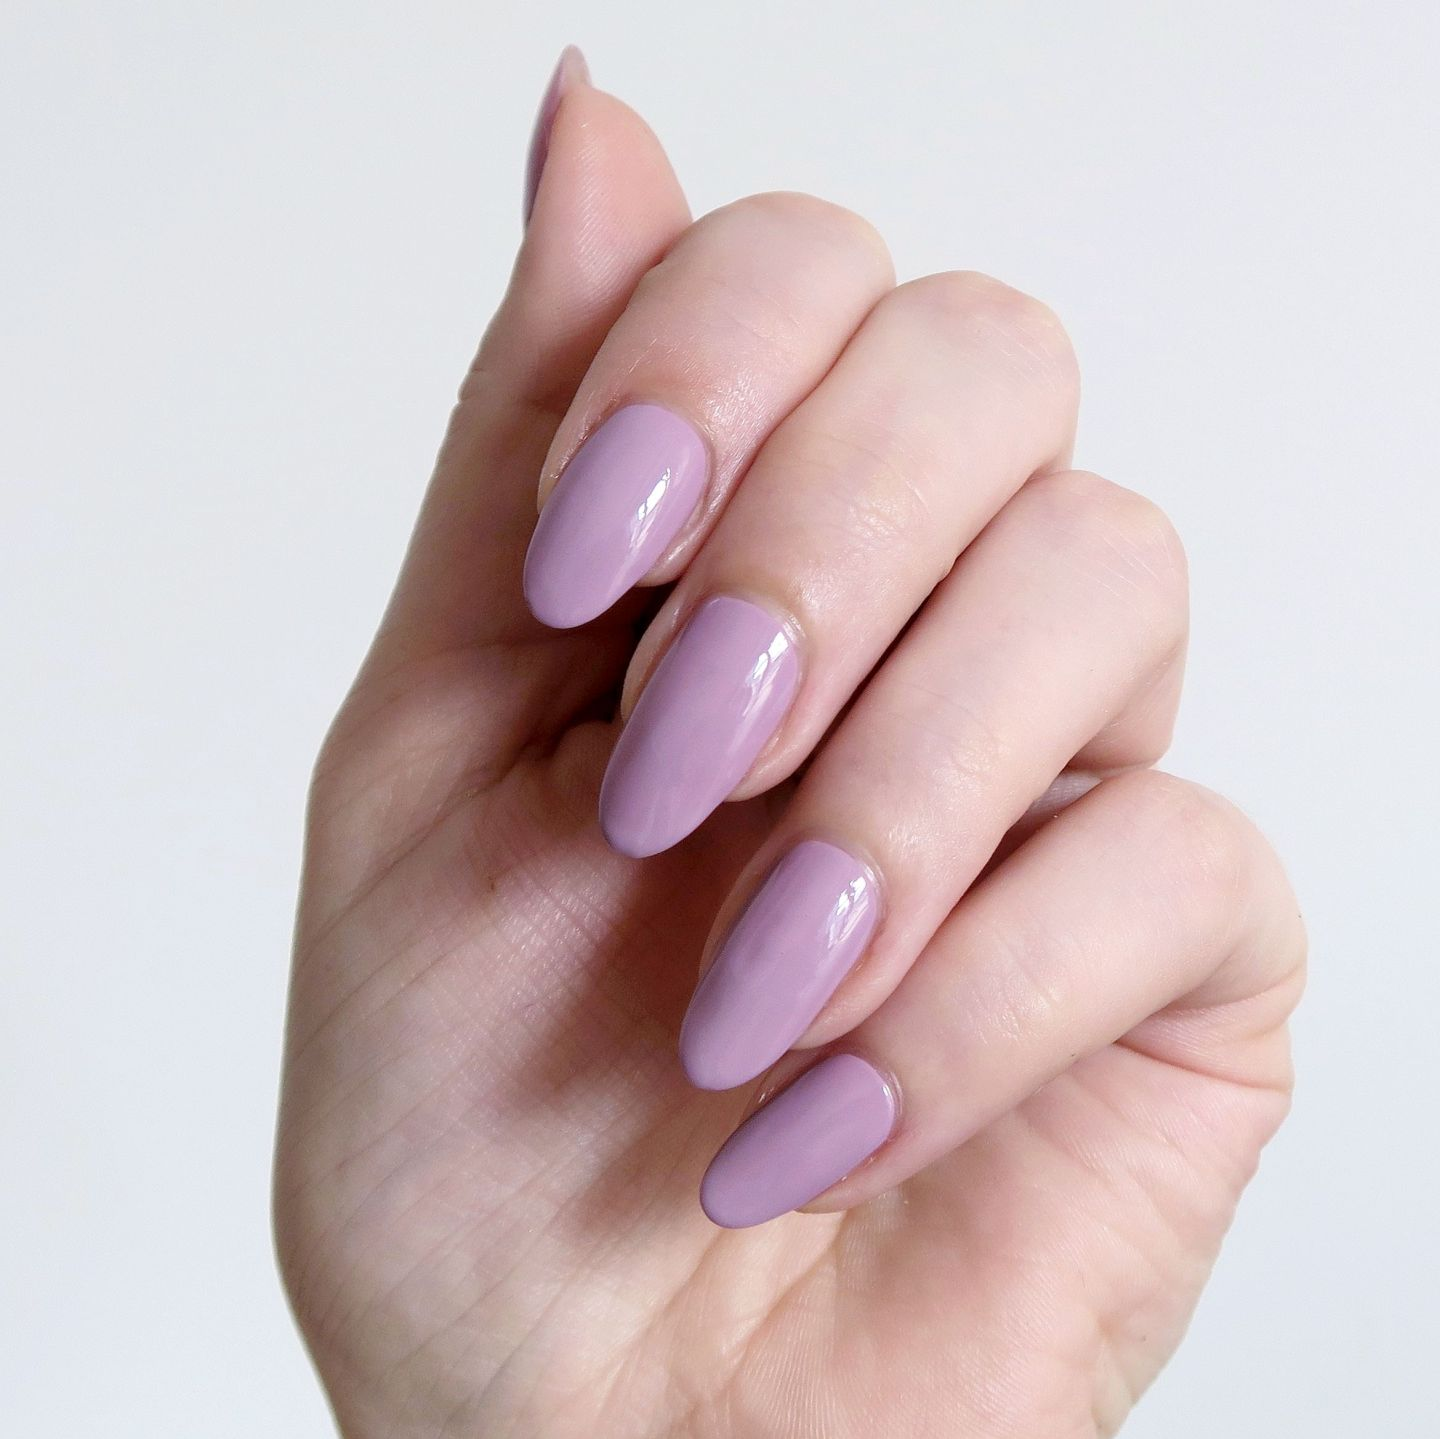 Repin and click to see my review of the new Morgan Taylor Color Of Petals collection. Morgan Taylor 'Merci Bouquet' - a light lilac creme nail polish inspiration. Spring manicure inspiration. #talontedlex